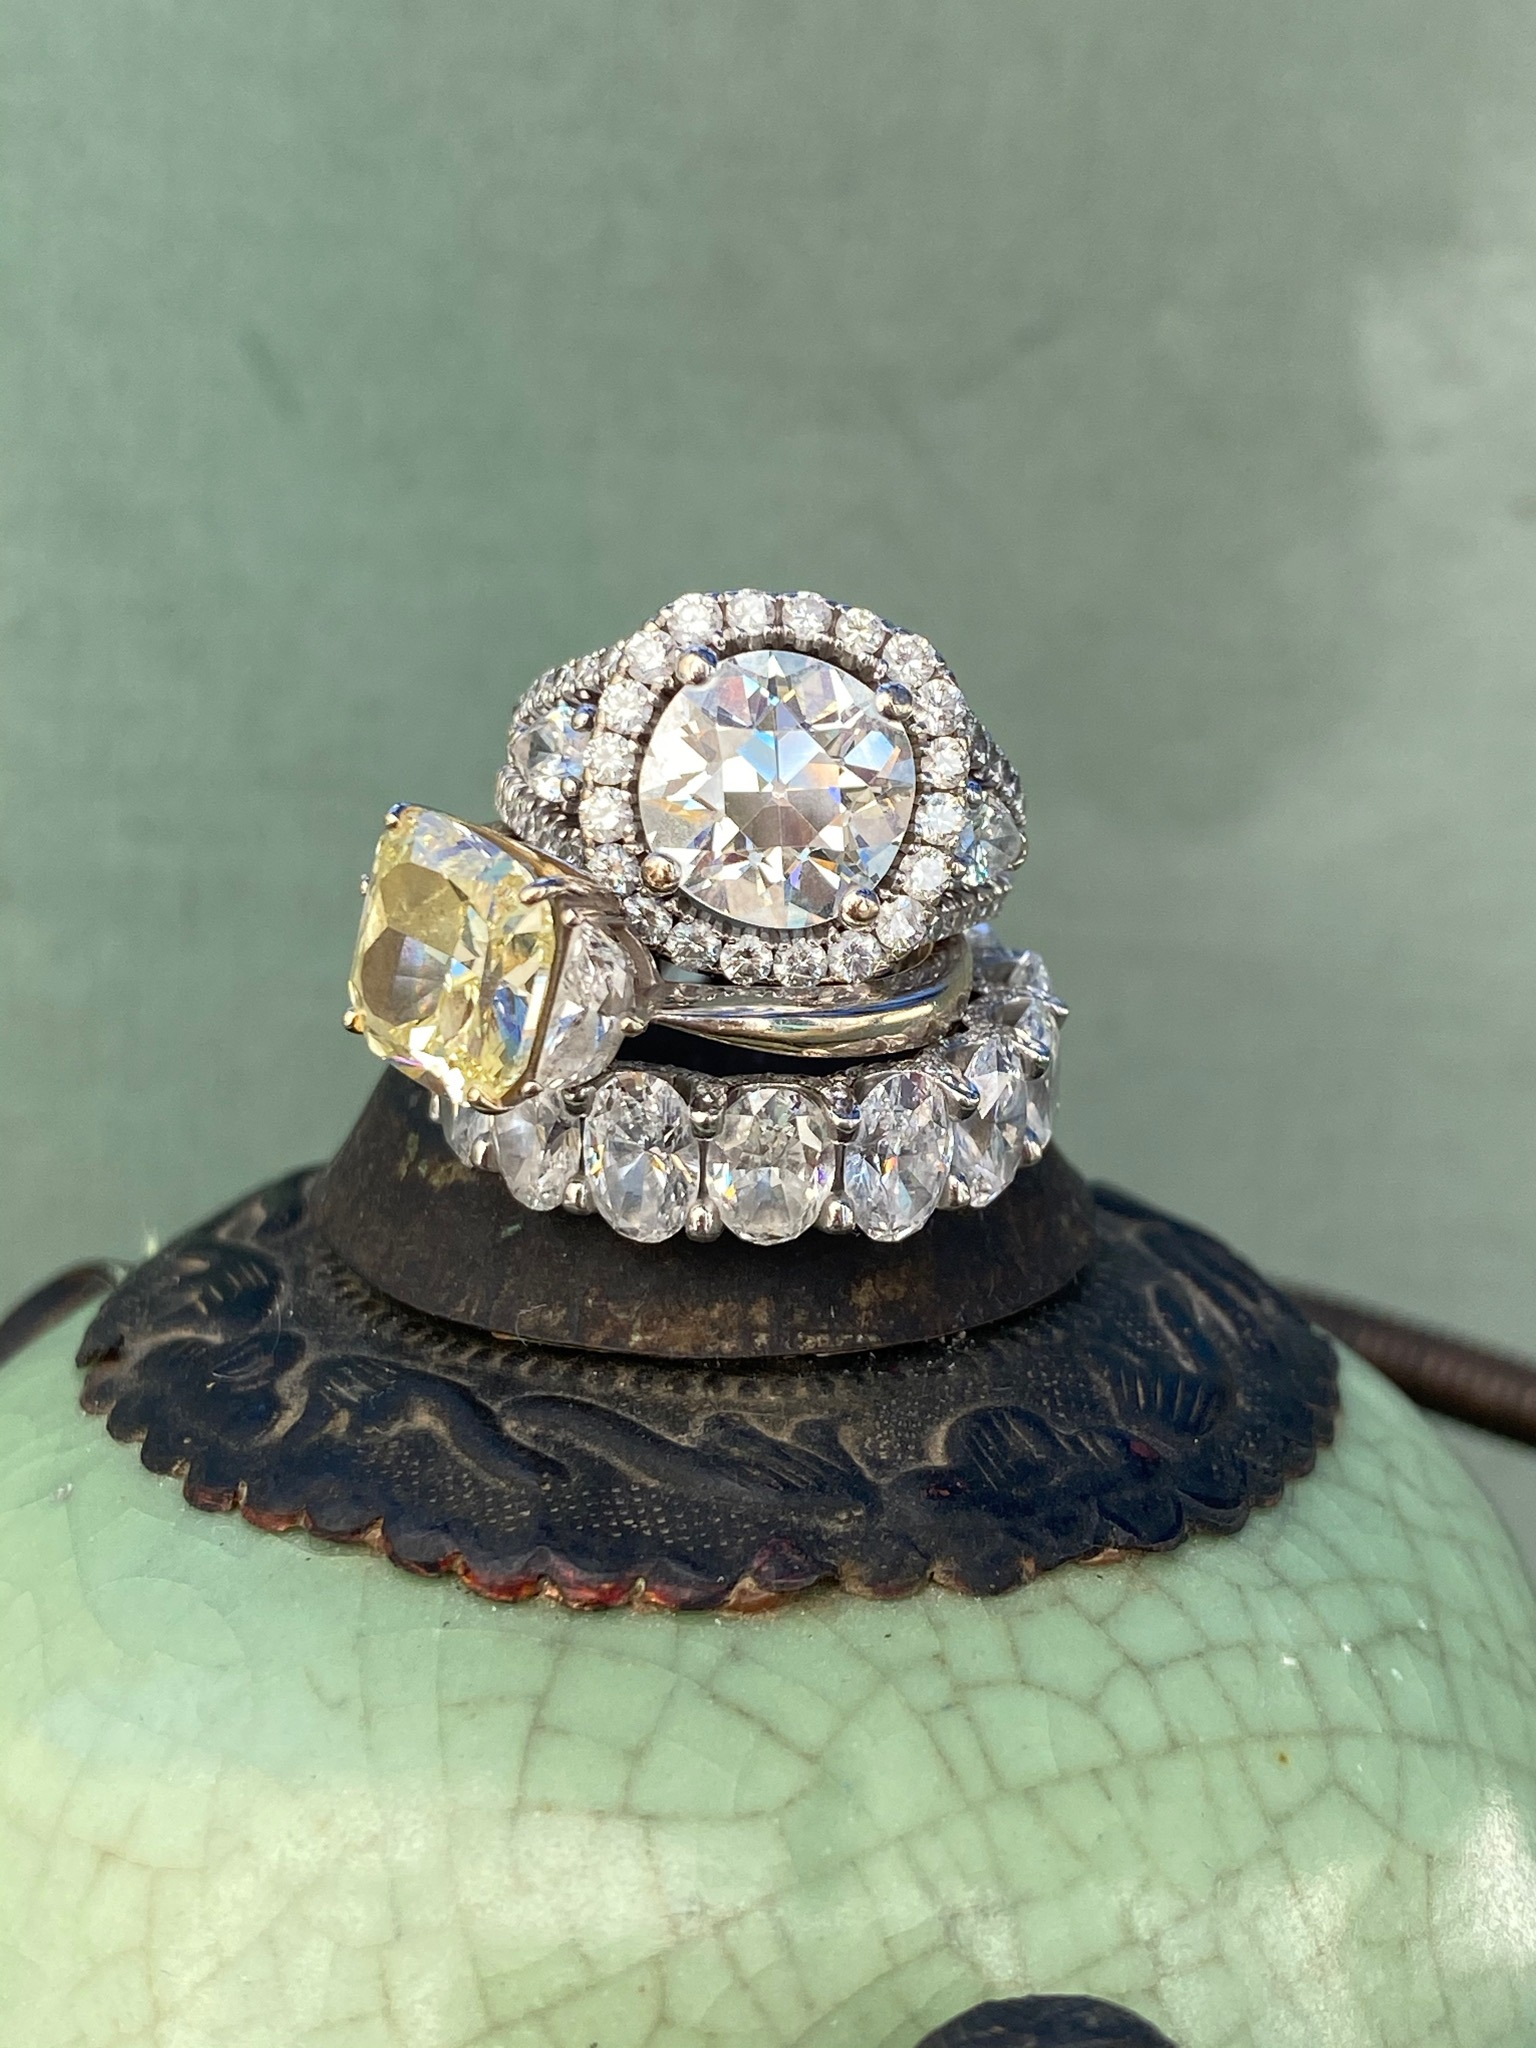 Customized designed rings, eternity ring with oval diamond, 3.3 carat cushion cut yellow diamond ring, and a 3.2 carat old cut diamond ring